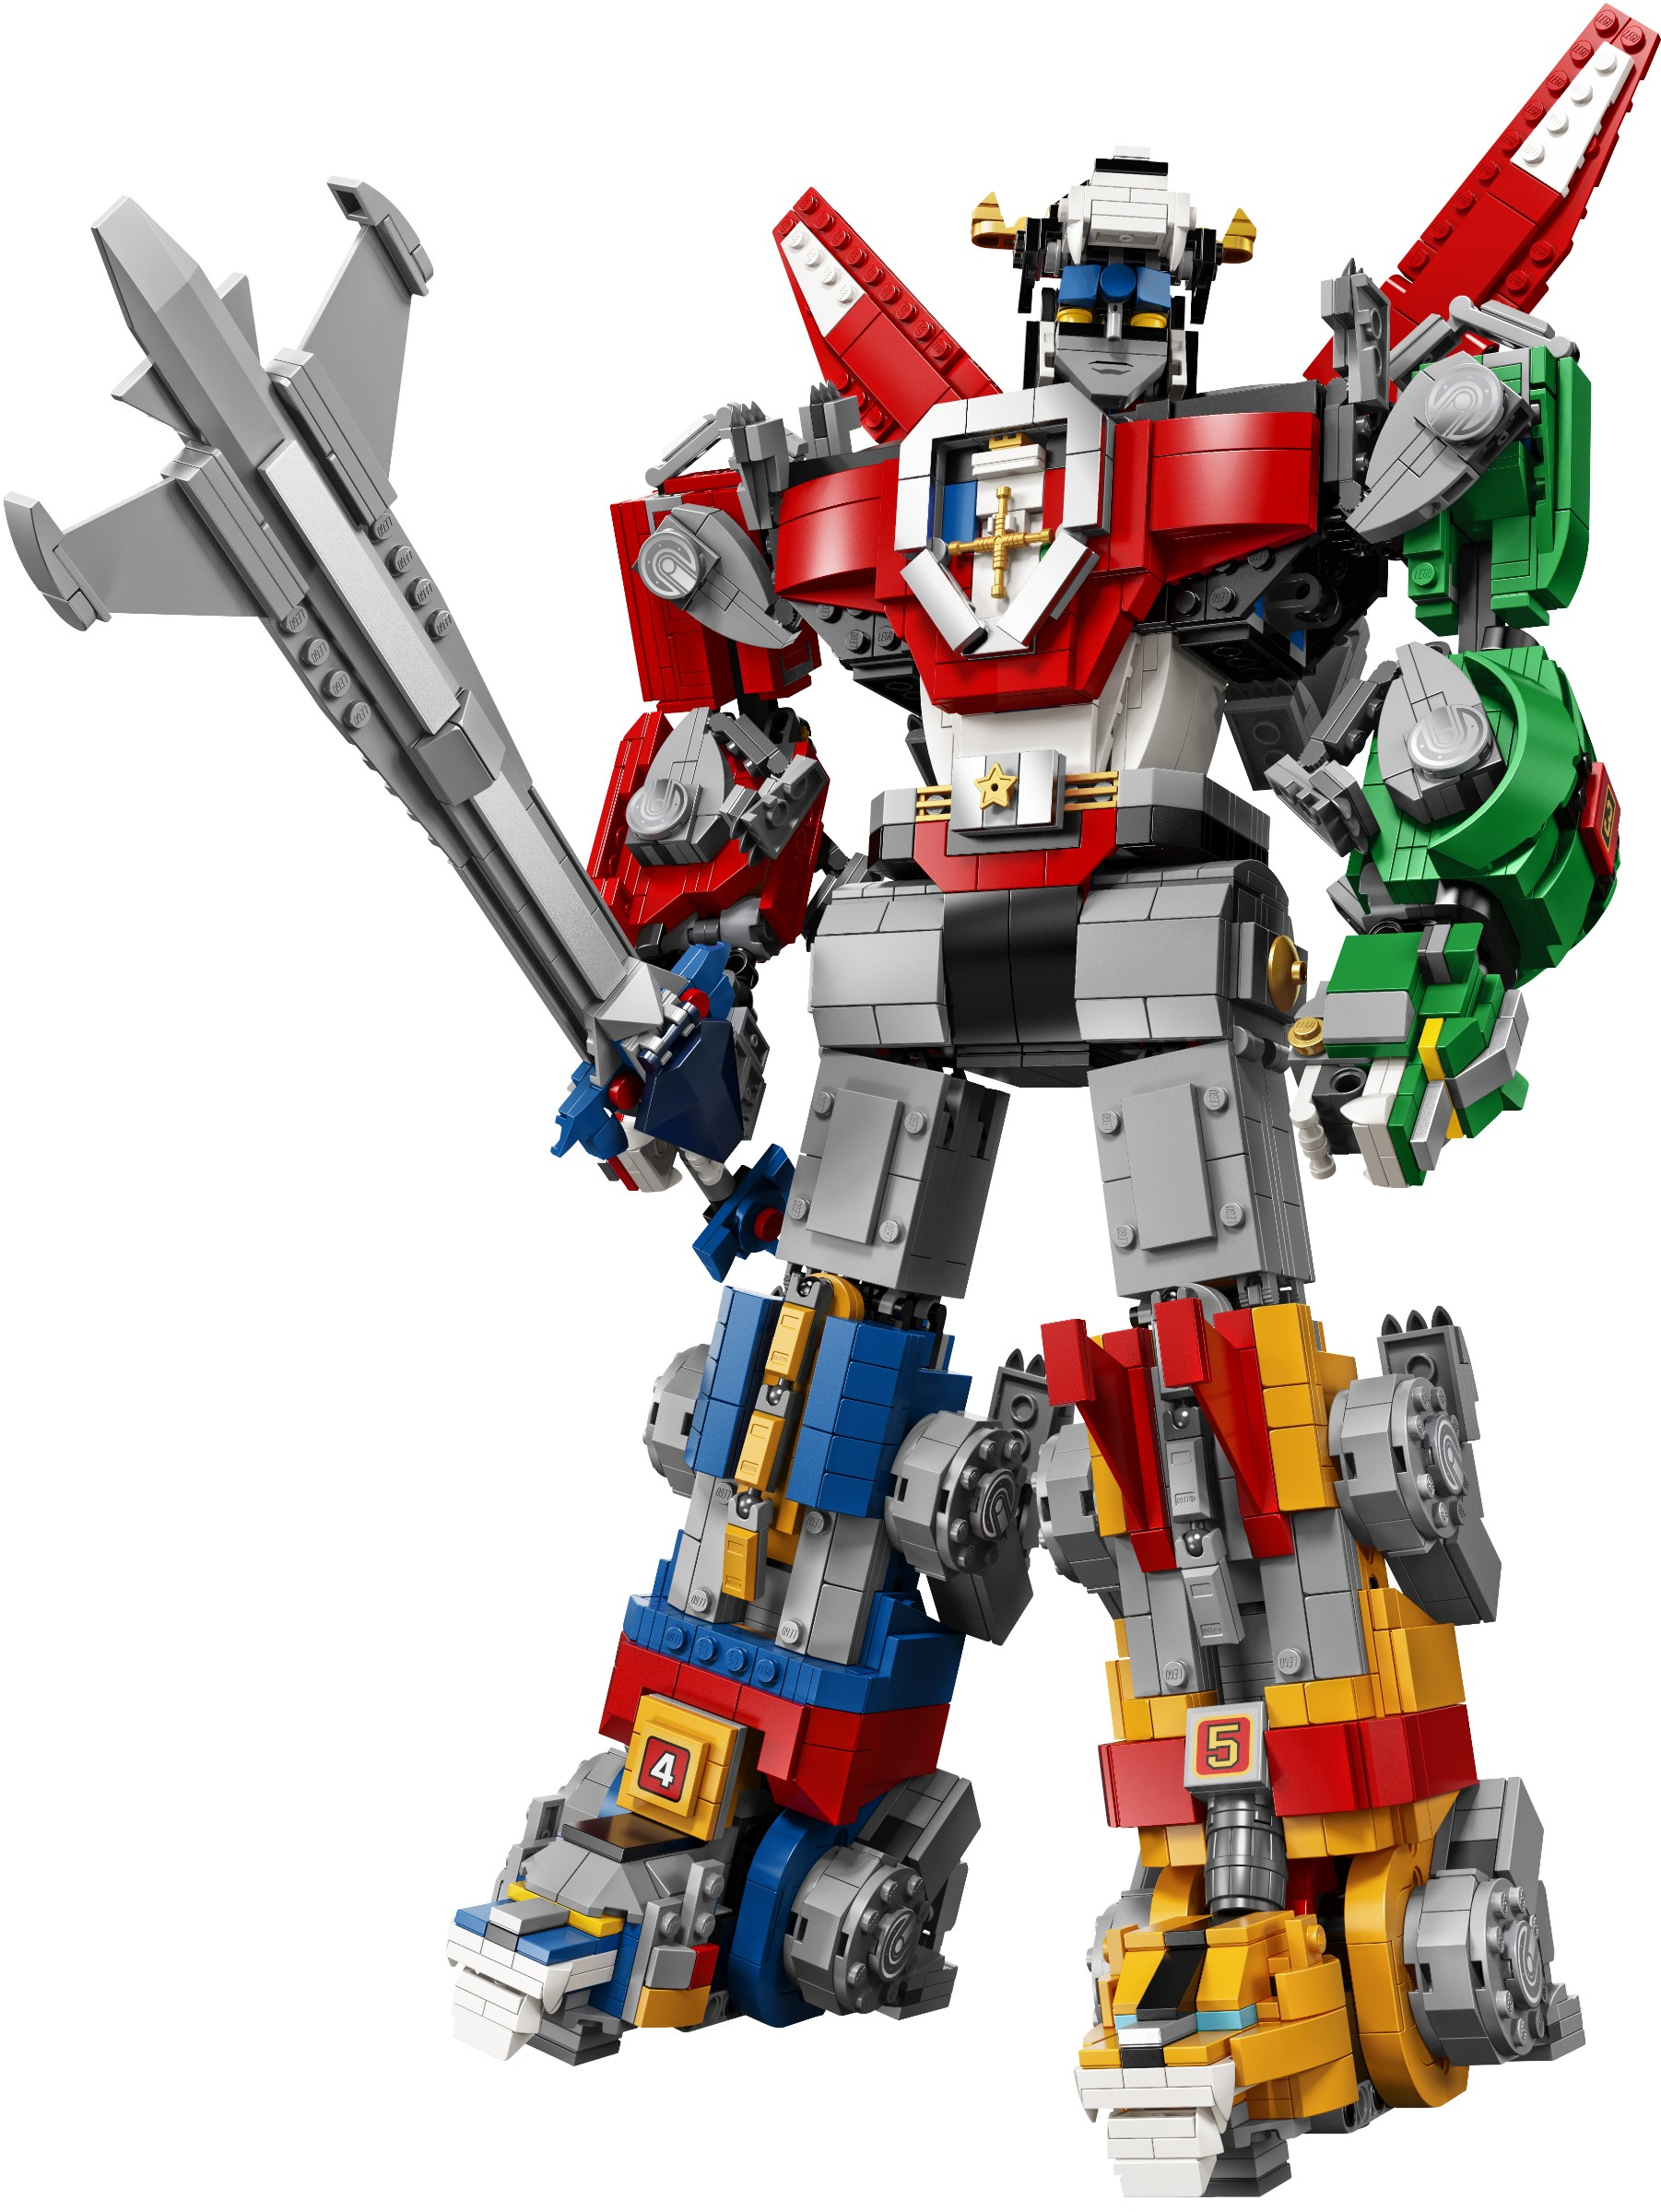 2018 Tagged Mech Brickset Lego Set Guide And Database